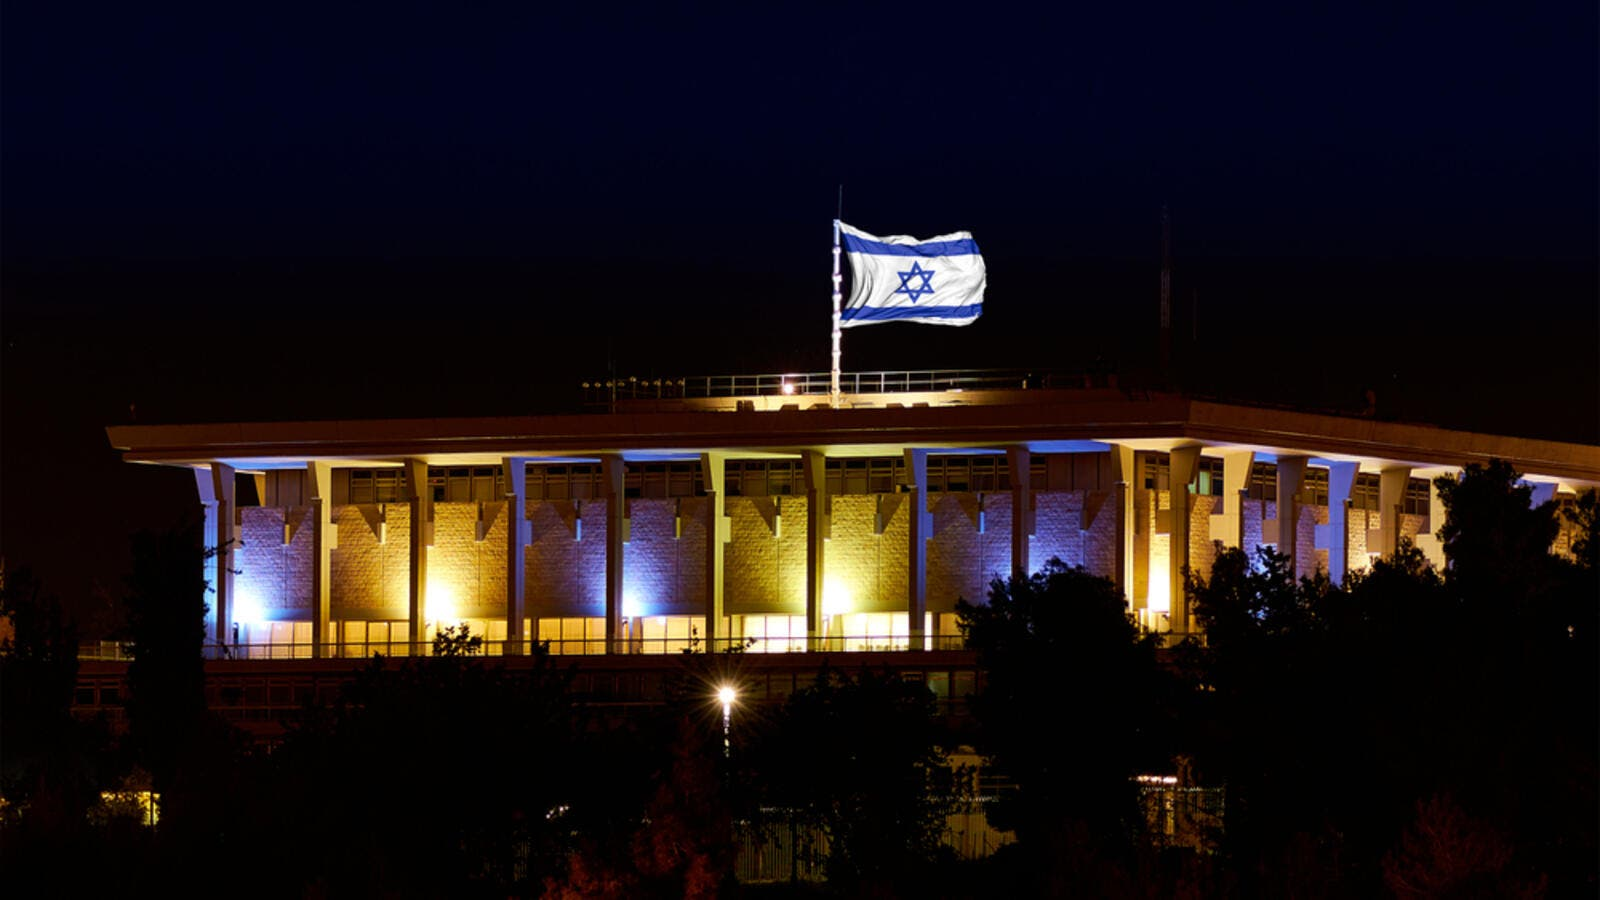 The Israeli parliament, the Knesset, at night. (Shutterstock)